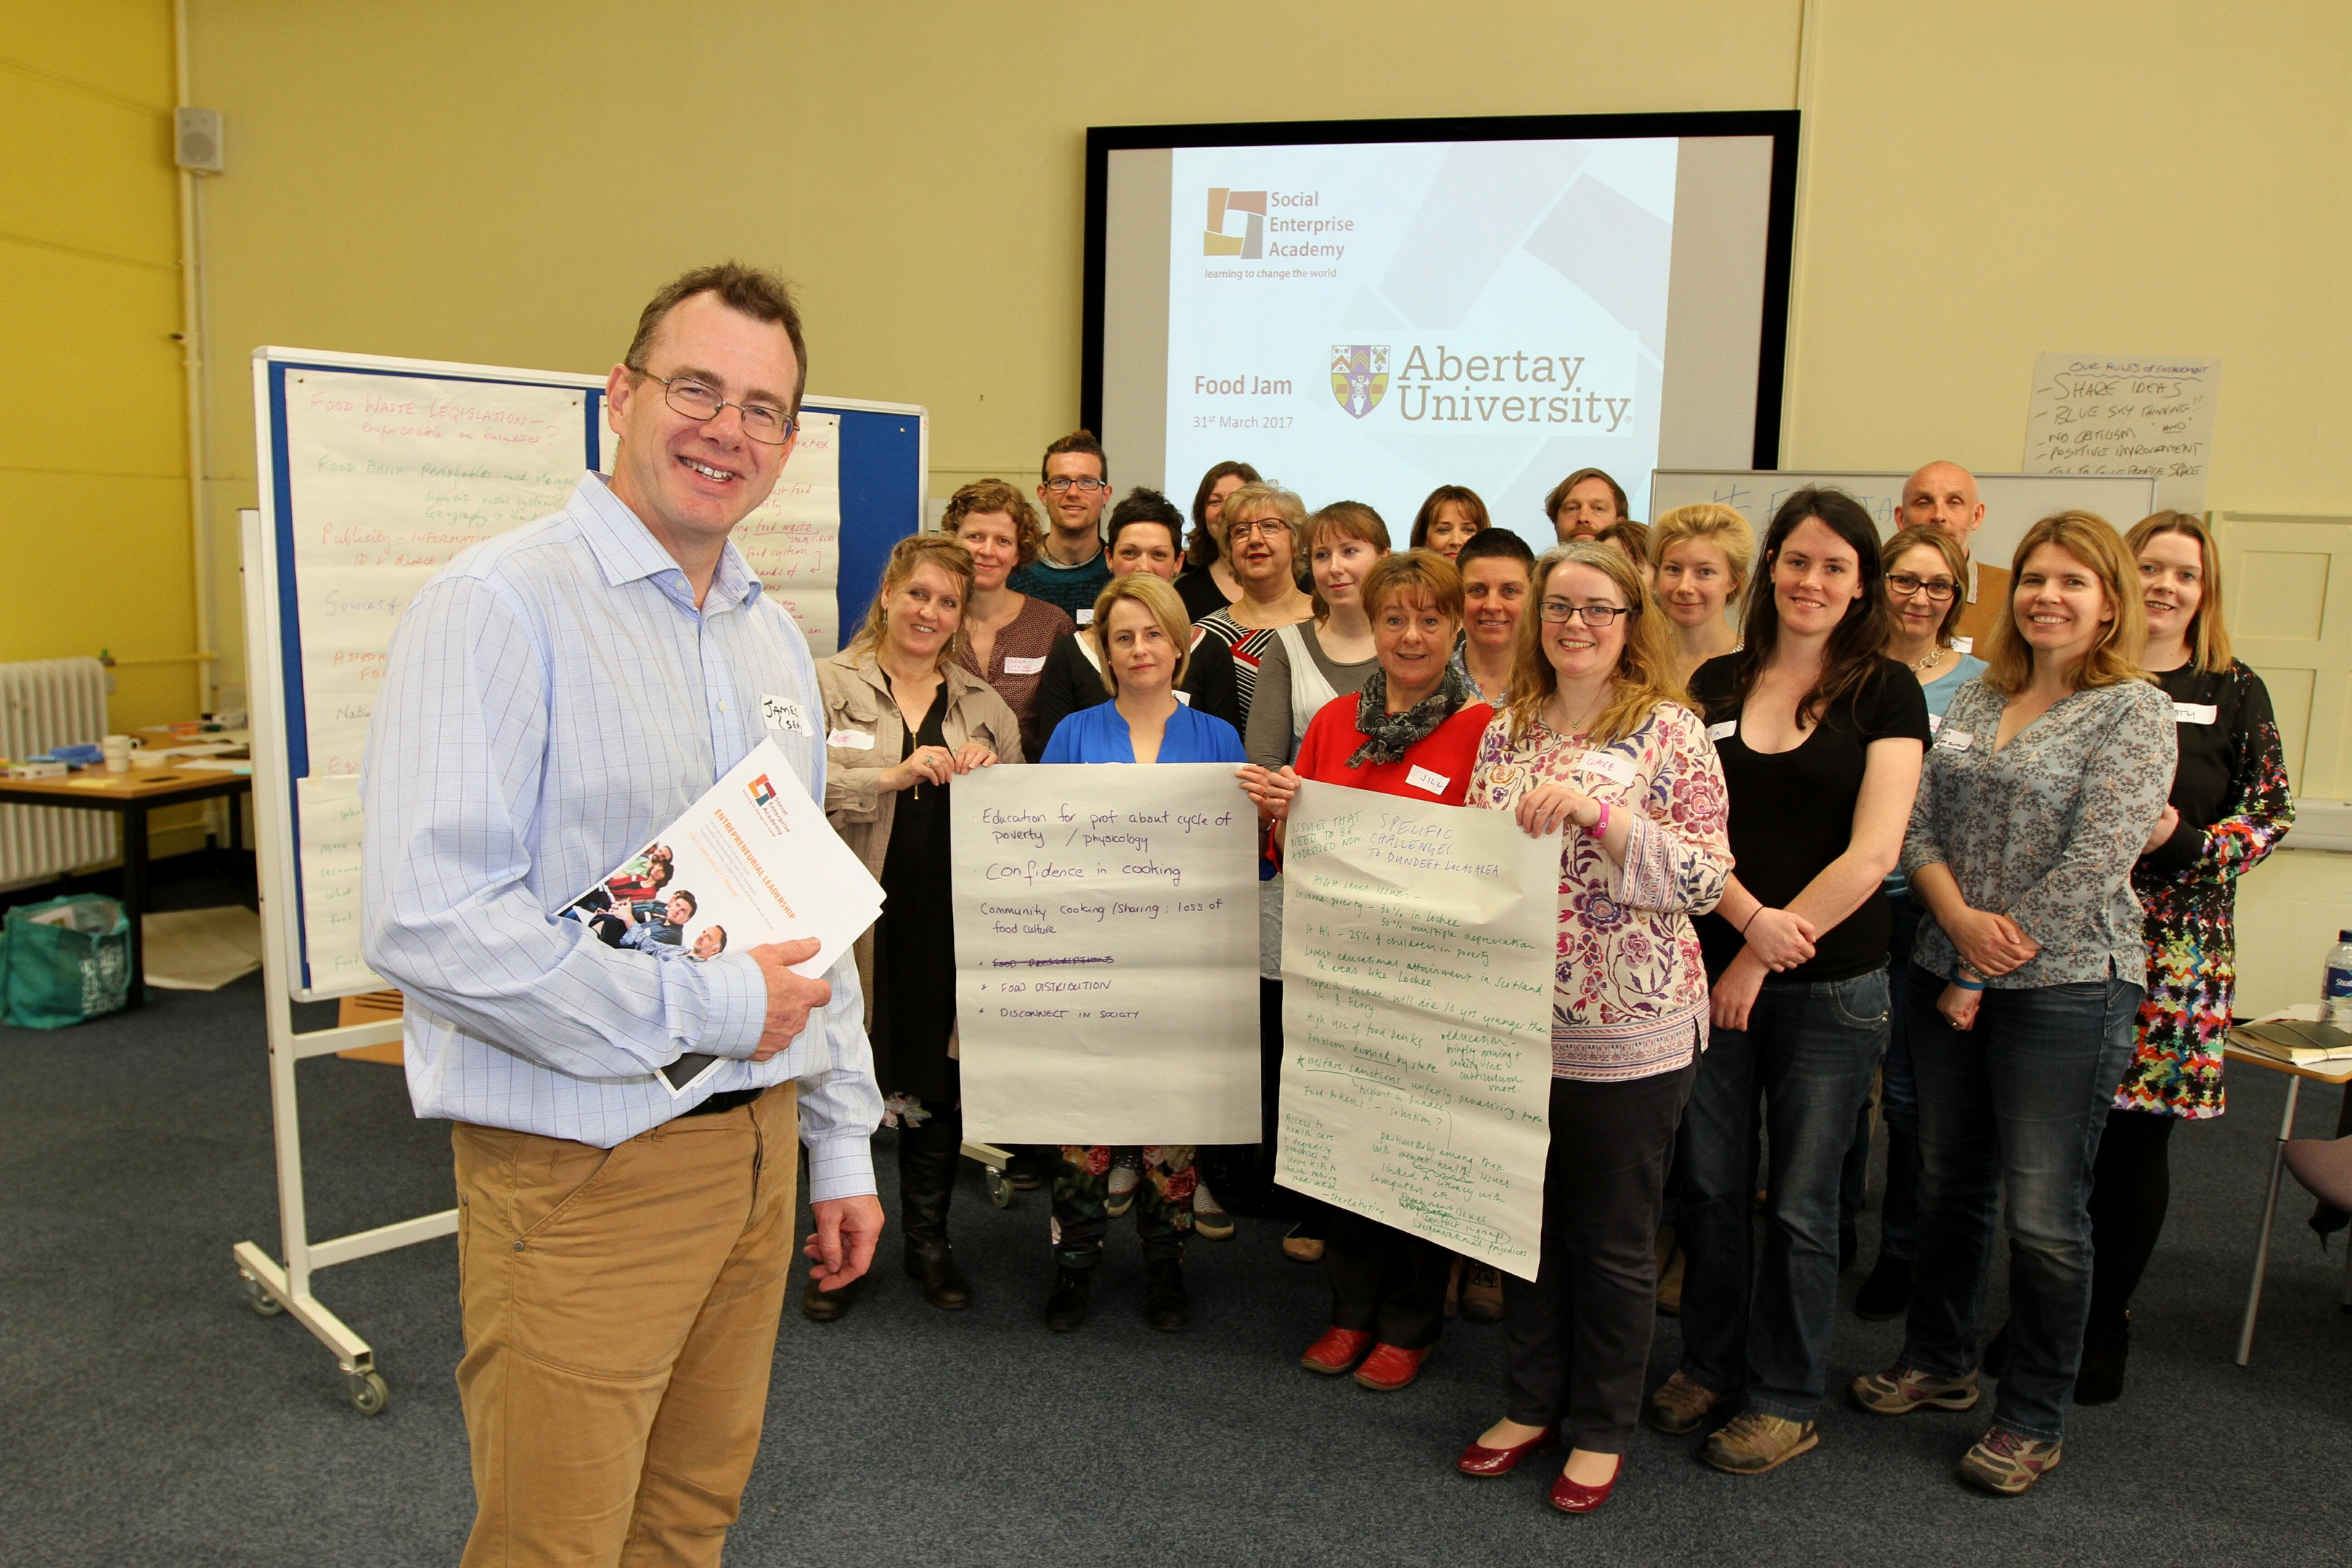 Attendees shared ideas on how to tackle the crisis of food poverty.